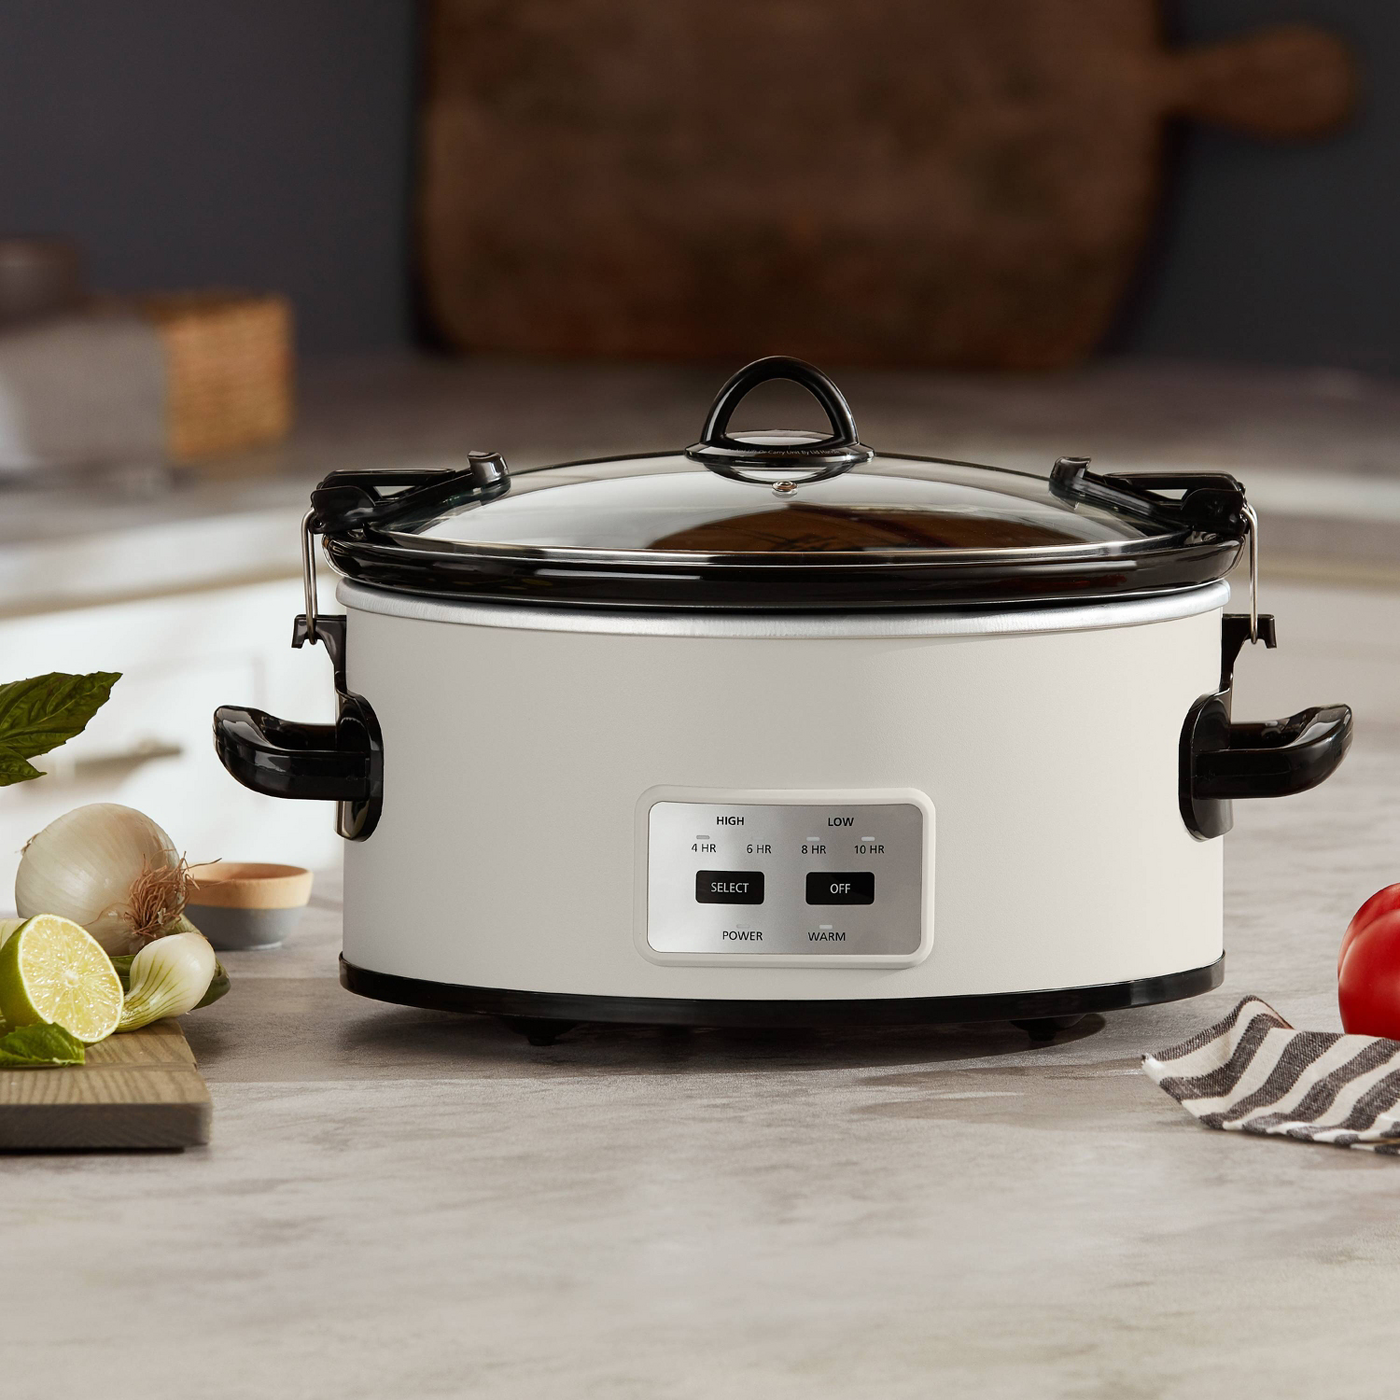 White crock pot on countertop